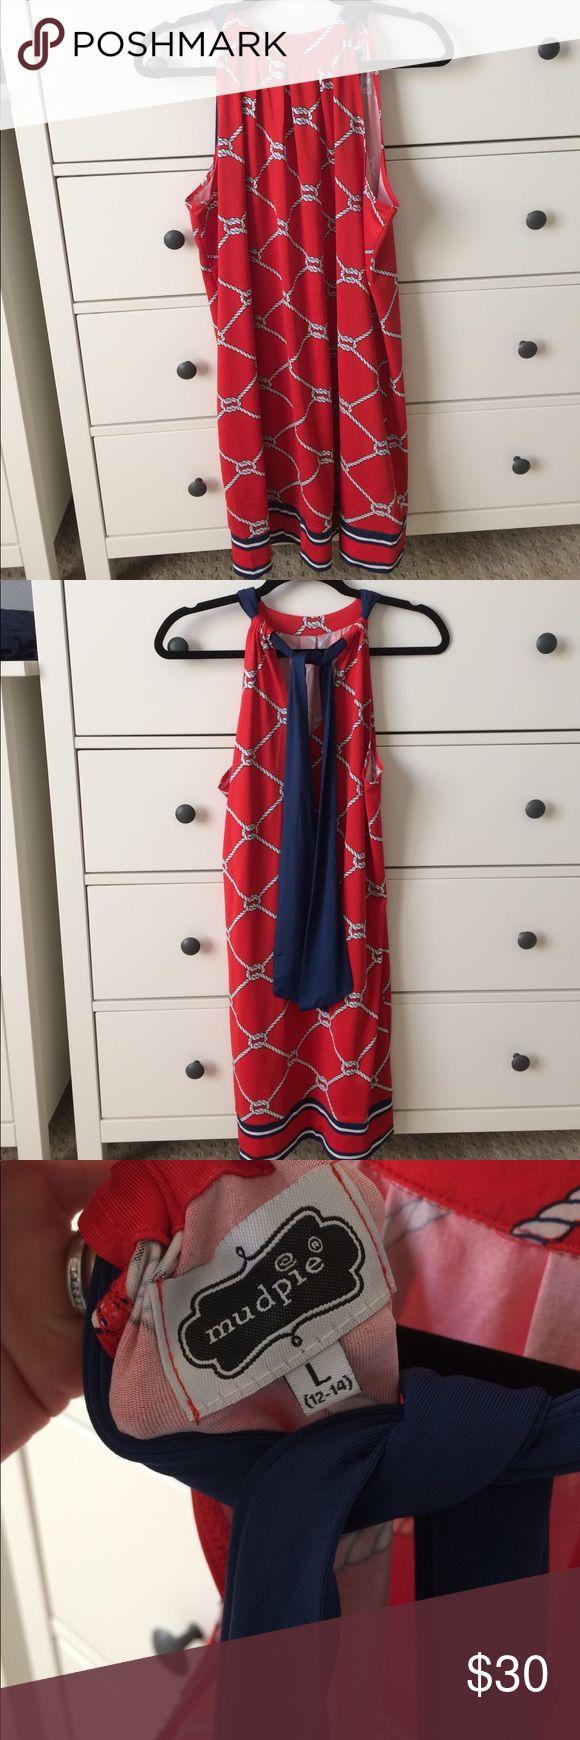 Never been worn nautical mud pie L. New never been worn nautical red dress. Great for summer parties, 4th of July. Bought if for a maternity dress but never got to wear it. Pet free, smoke free. Mud Pie Dresses Midi